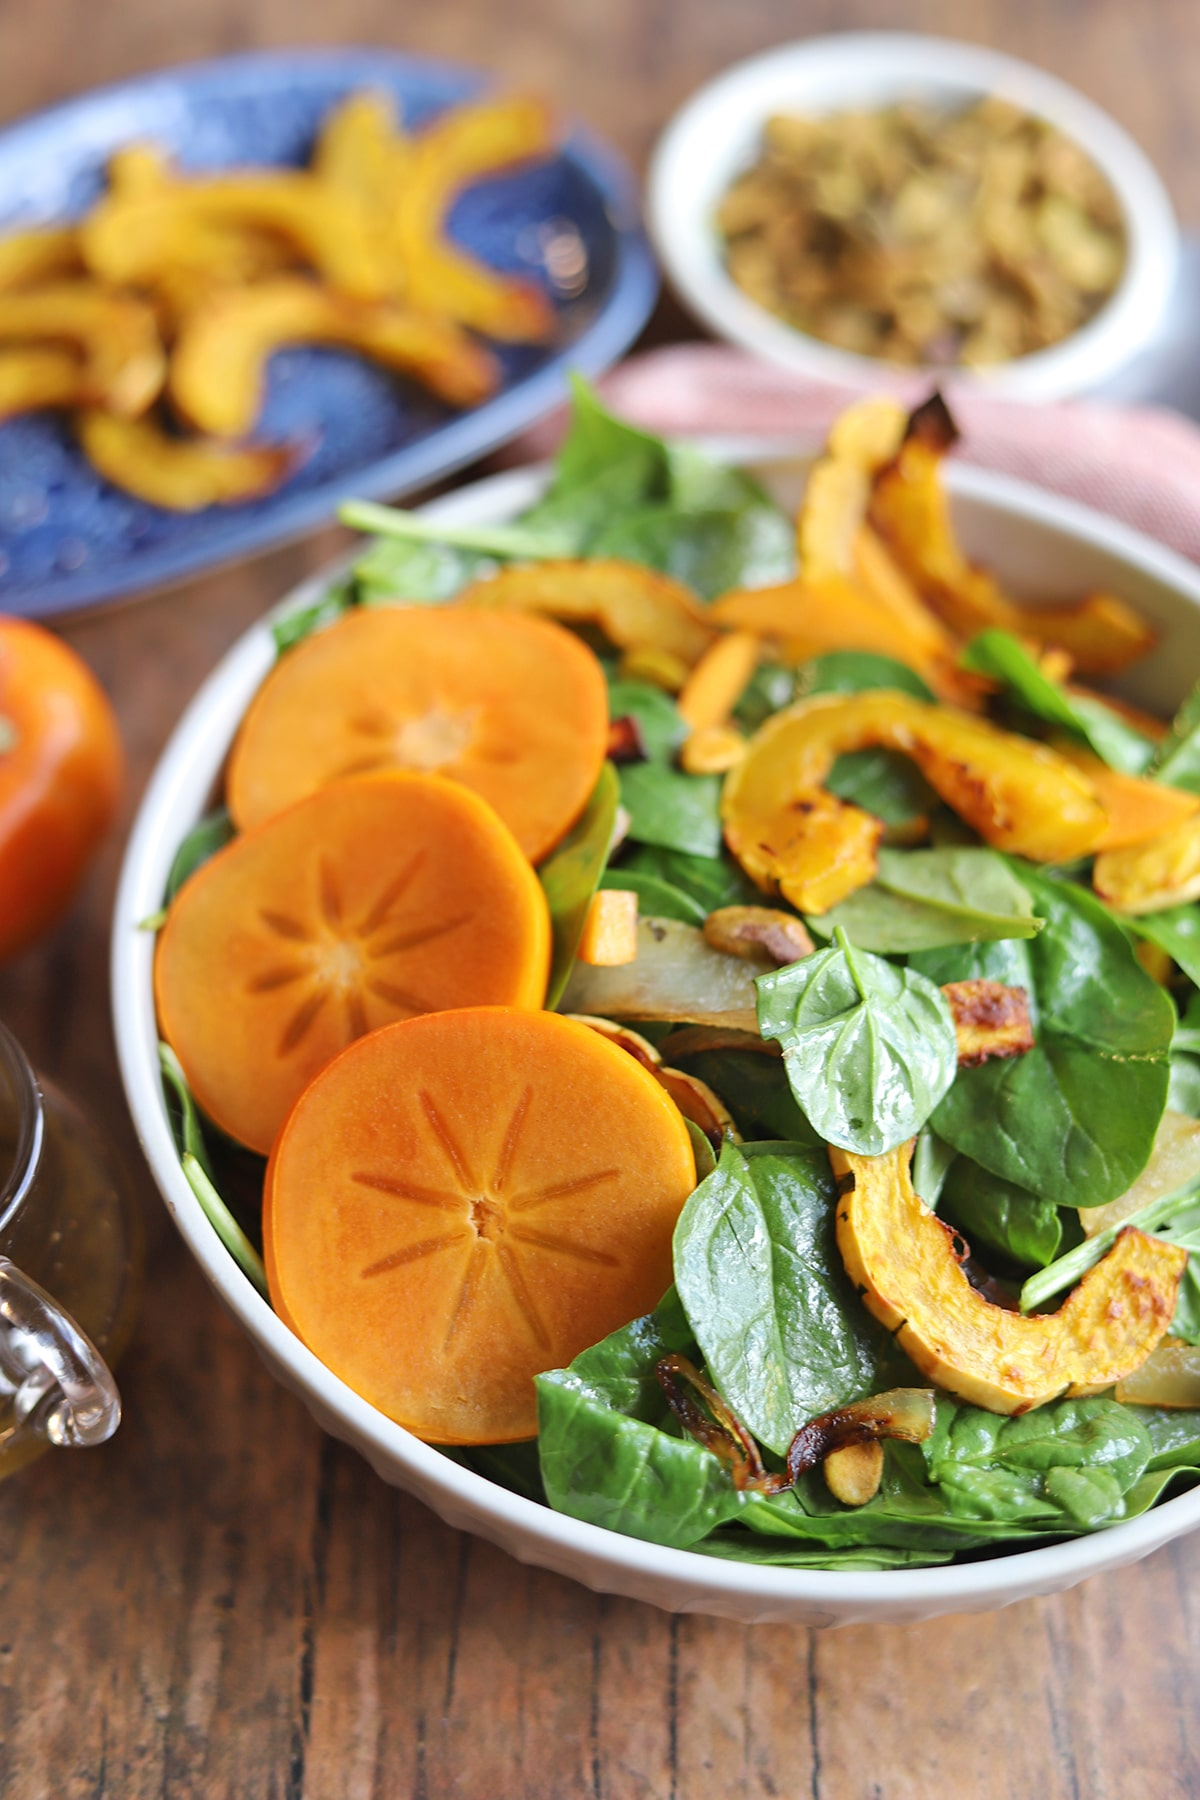 Persimmons on top of salad.